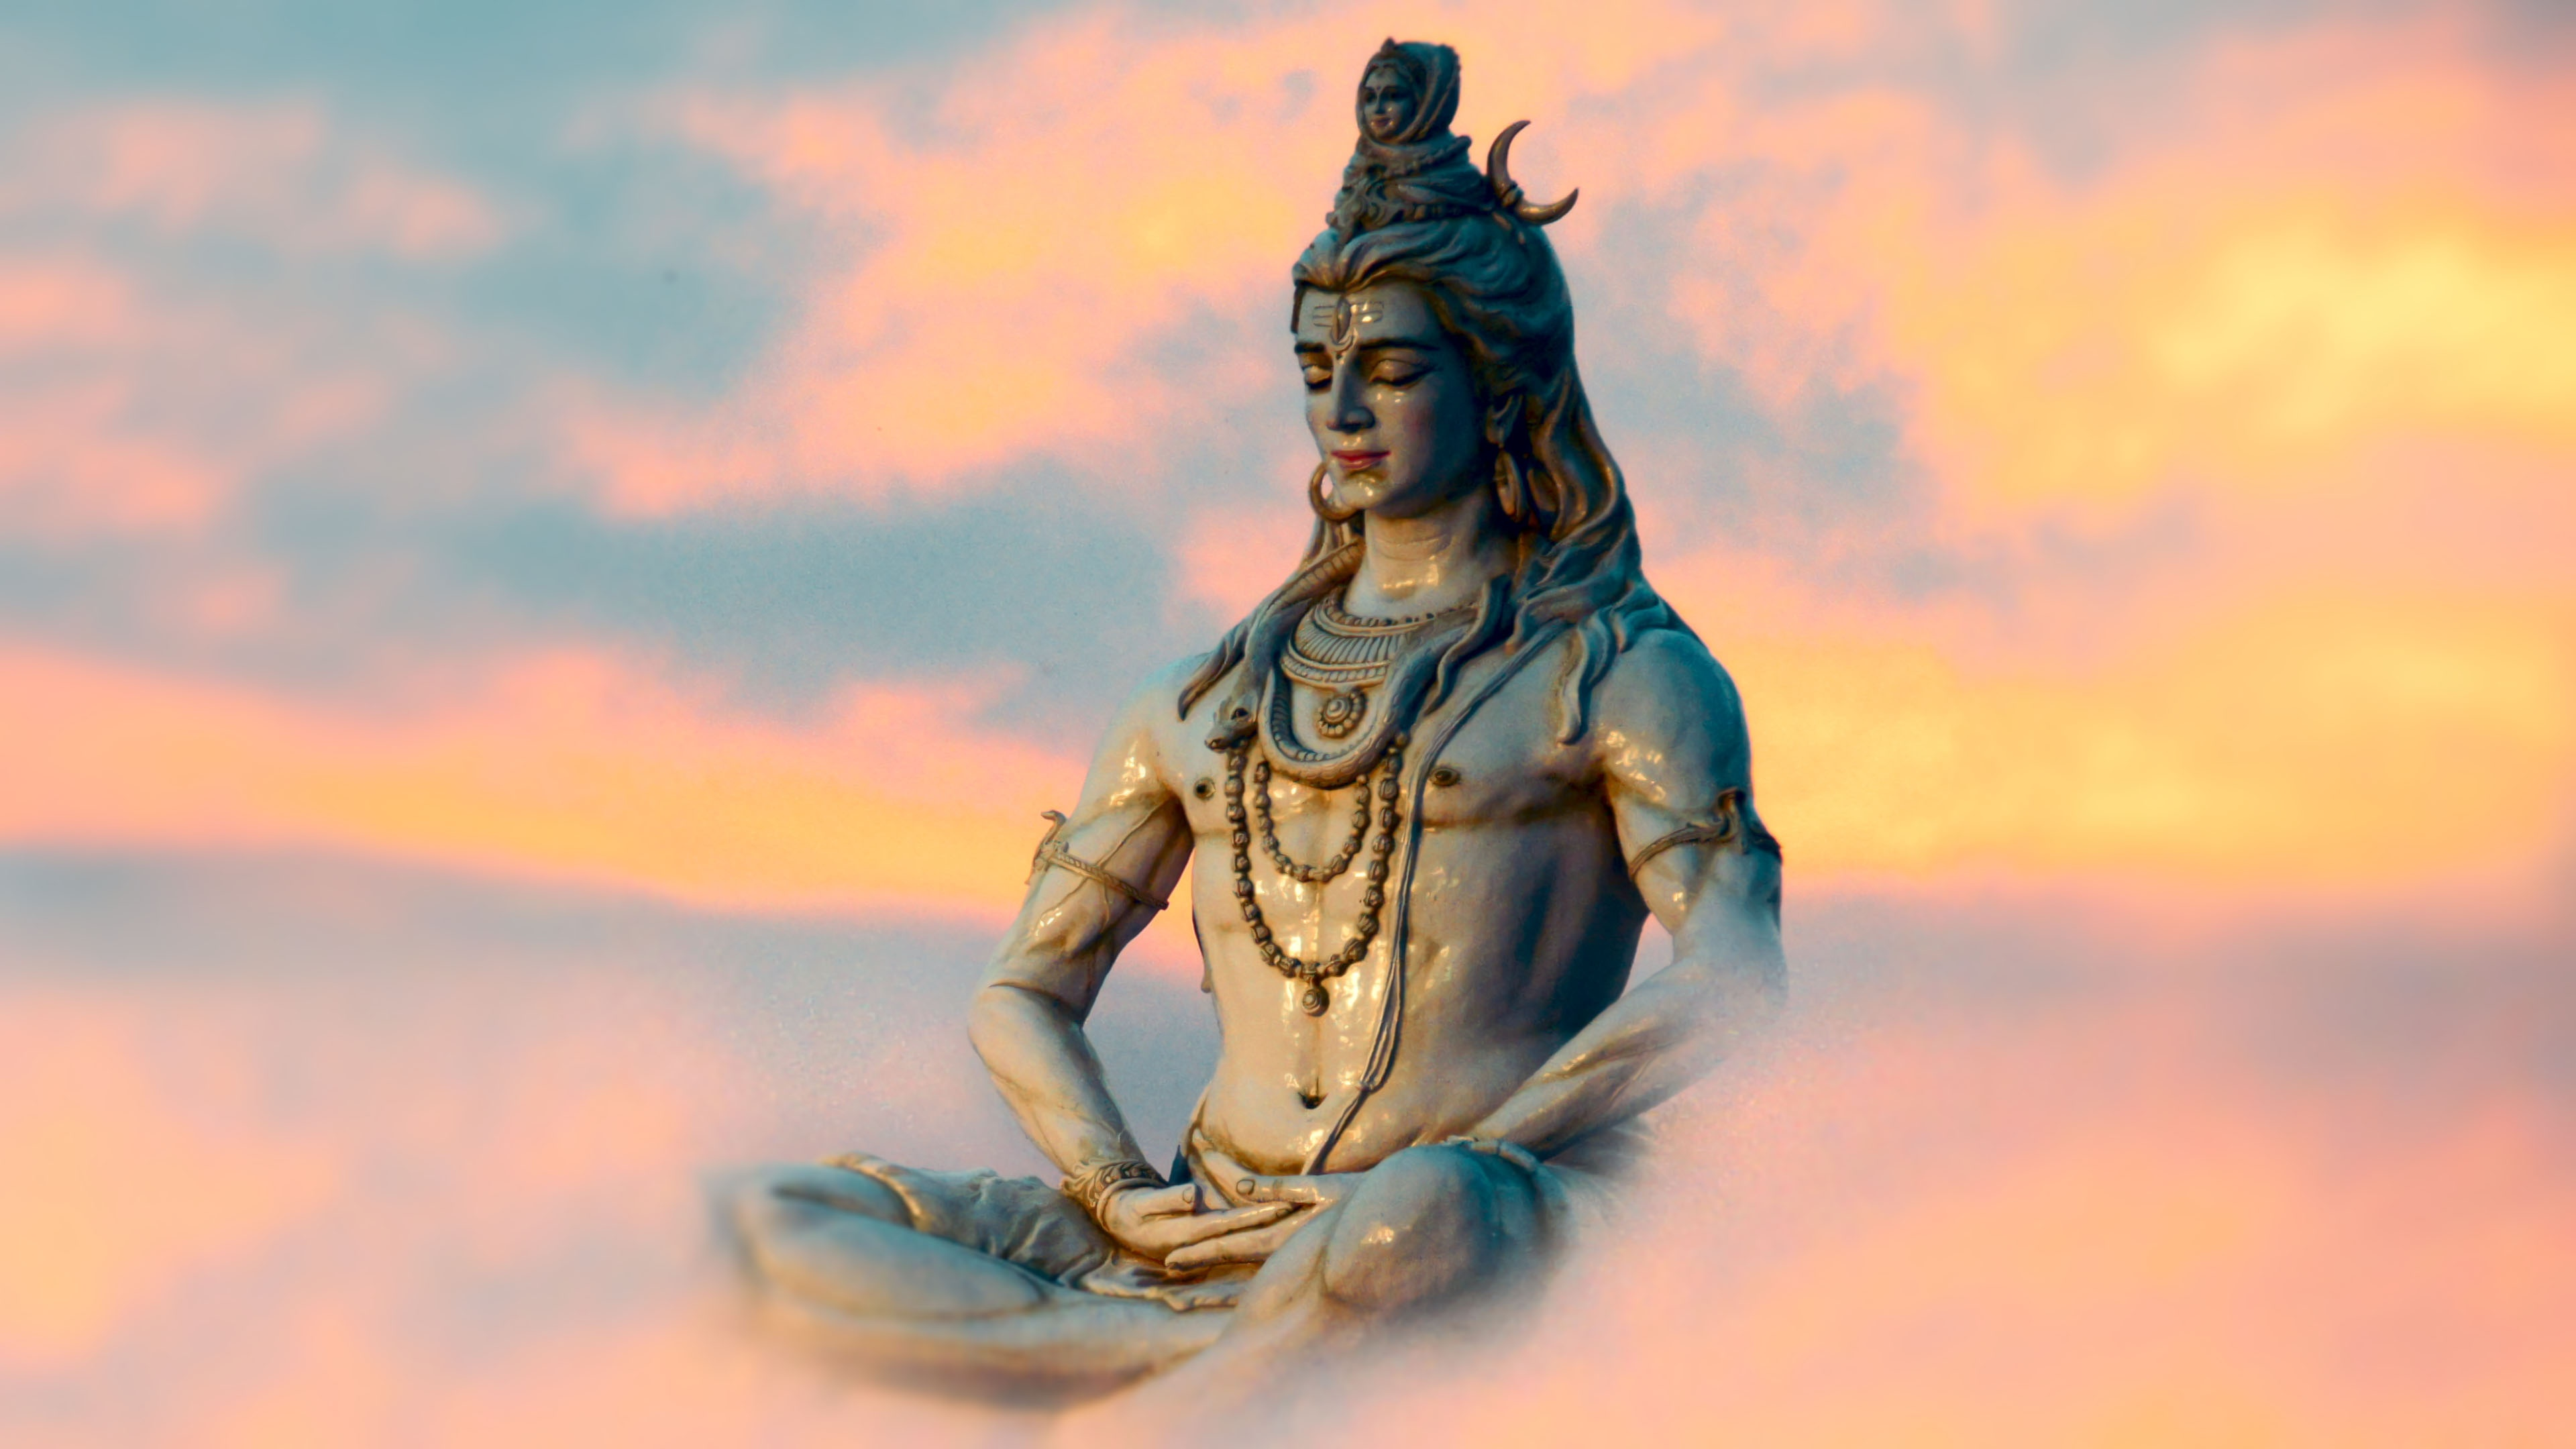 Top Wallpaper Lord Shiv - Shiva-Yog-Statue-4K-Wallpaper  Graphic_41469.jpg